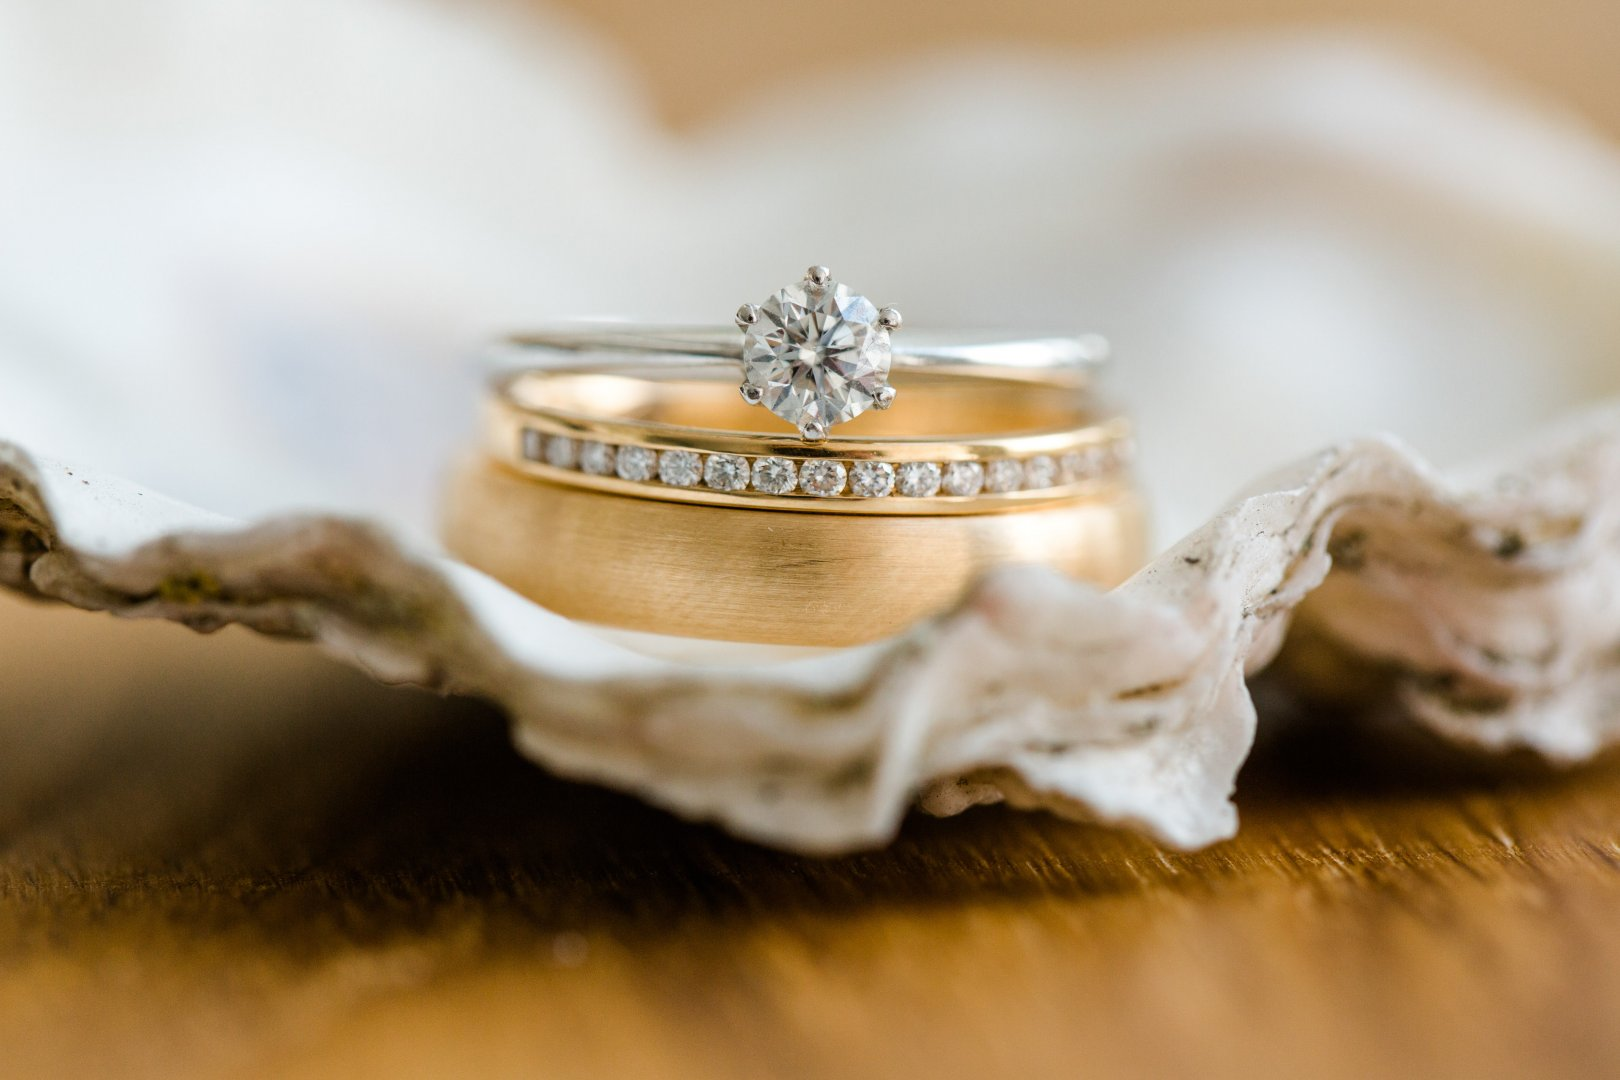 Ring Engagement ring Wedding ring Fashion accessory Jewellery Wedding ceremony supply Photography Silver Metal Macro photography Engagement